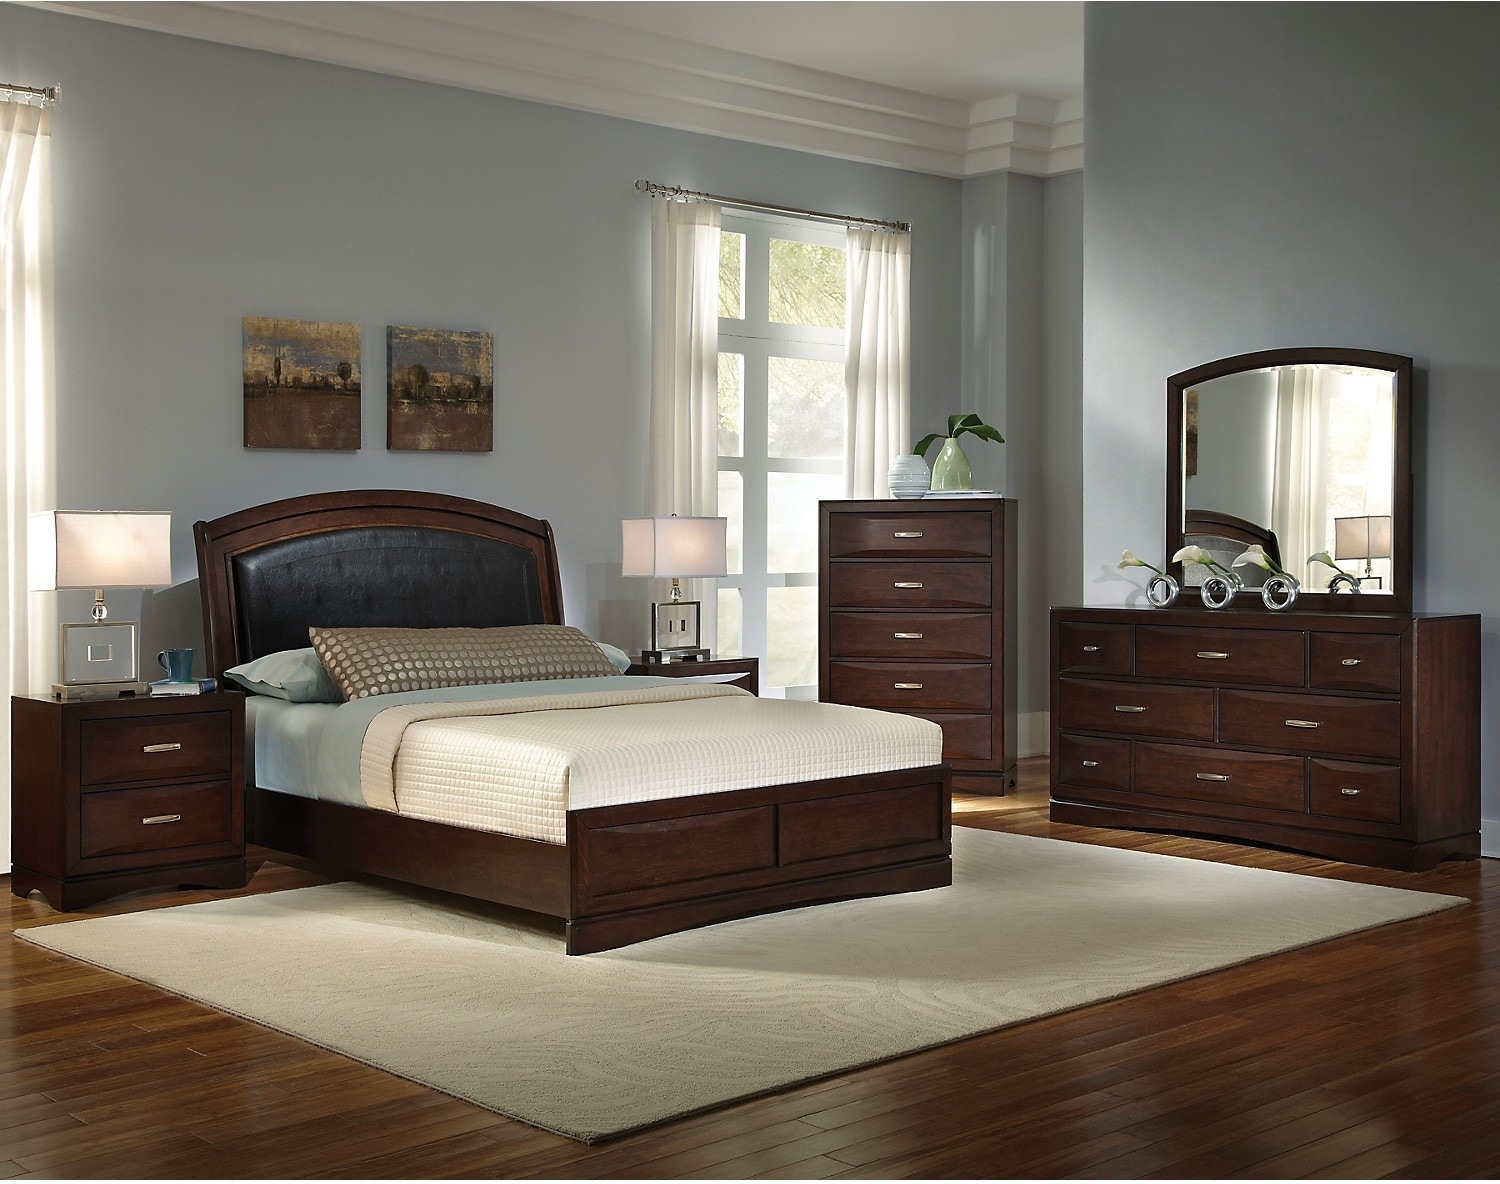 Country Bedroom Decorating Ideas Beverly 8 Piece King Bedroom Set The Brick